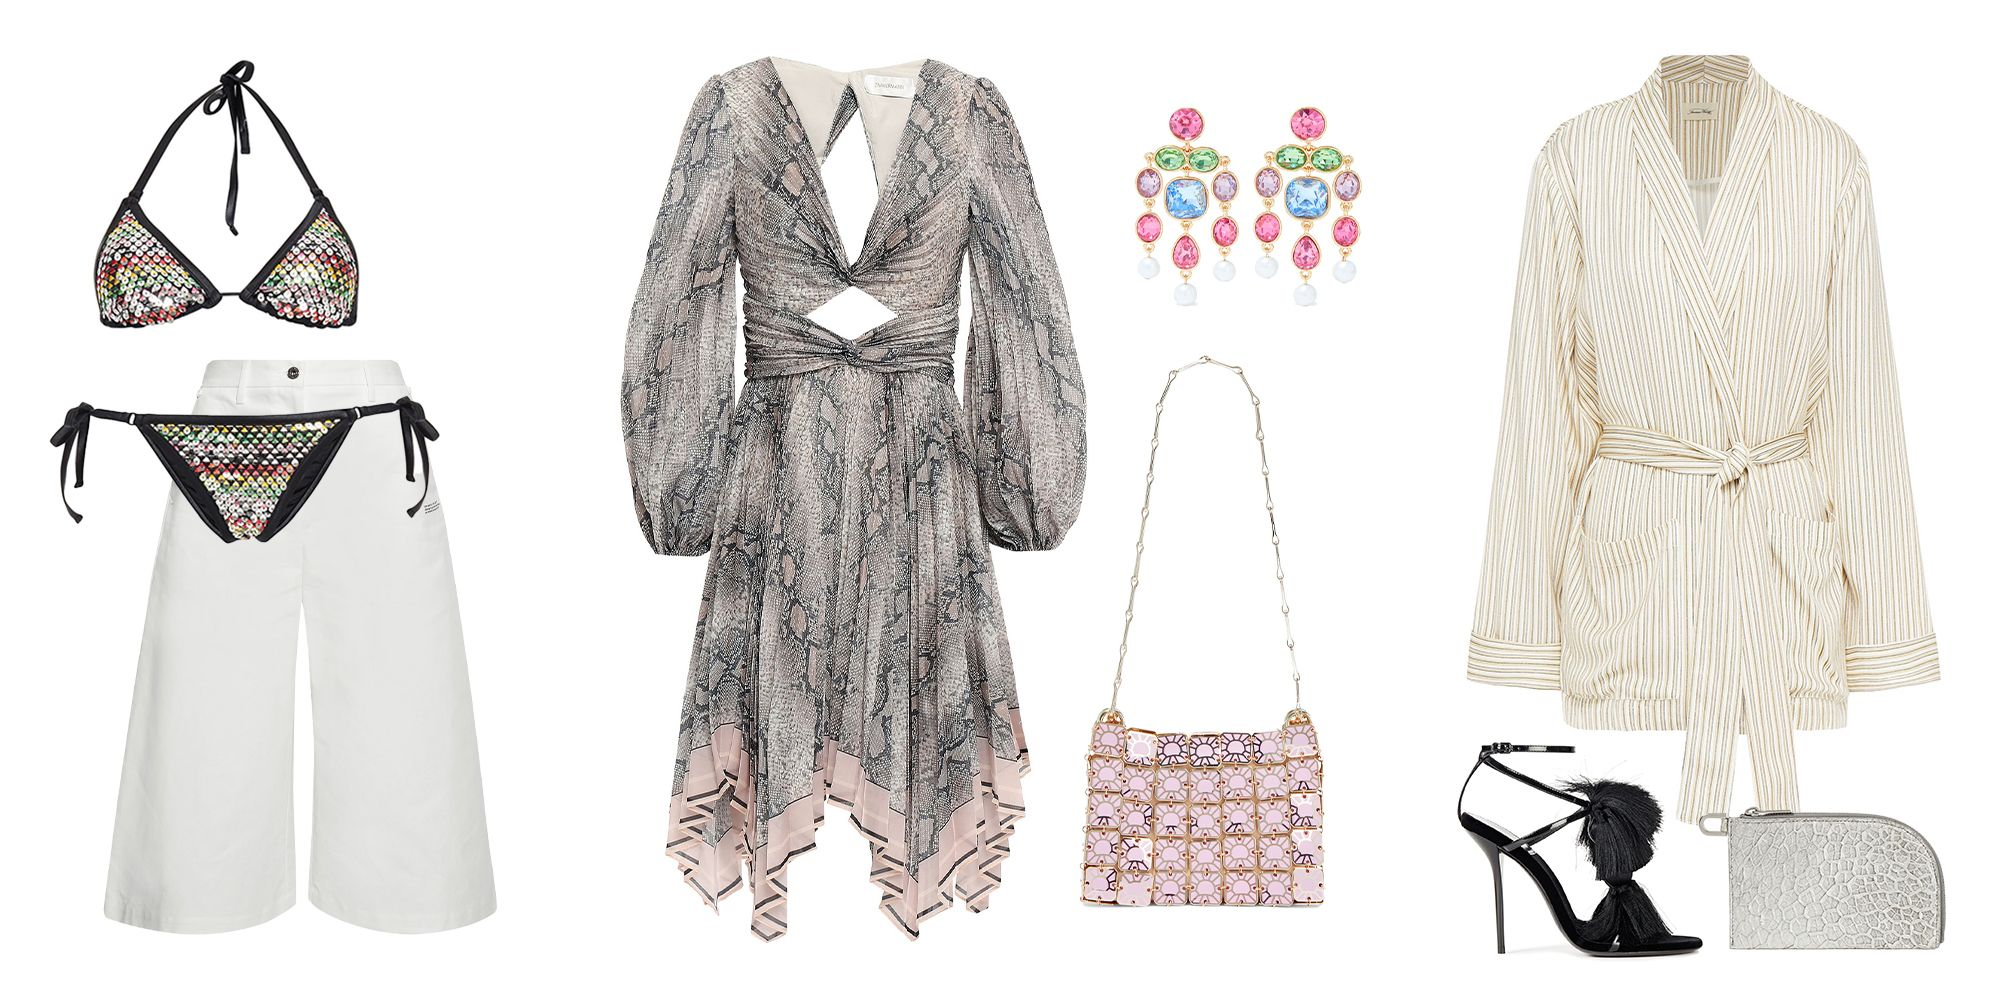 The Outnet Sale is Here, With Deals On Ganni, Balenciaga, and More